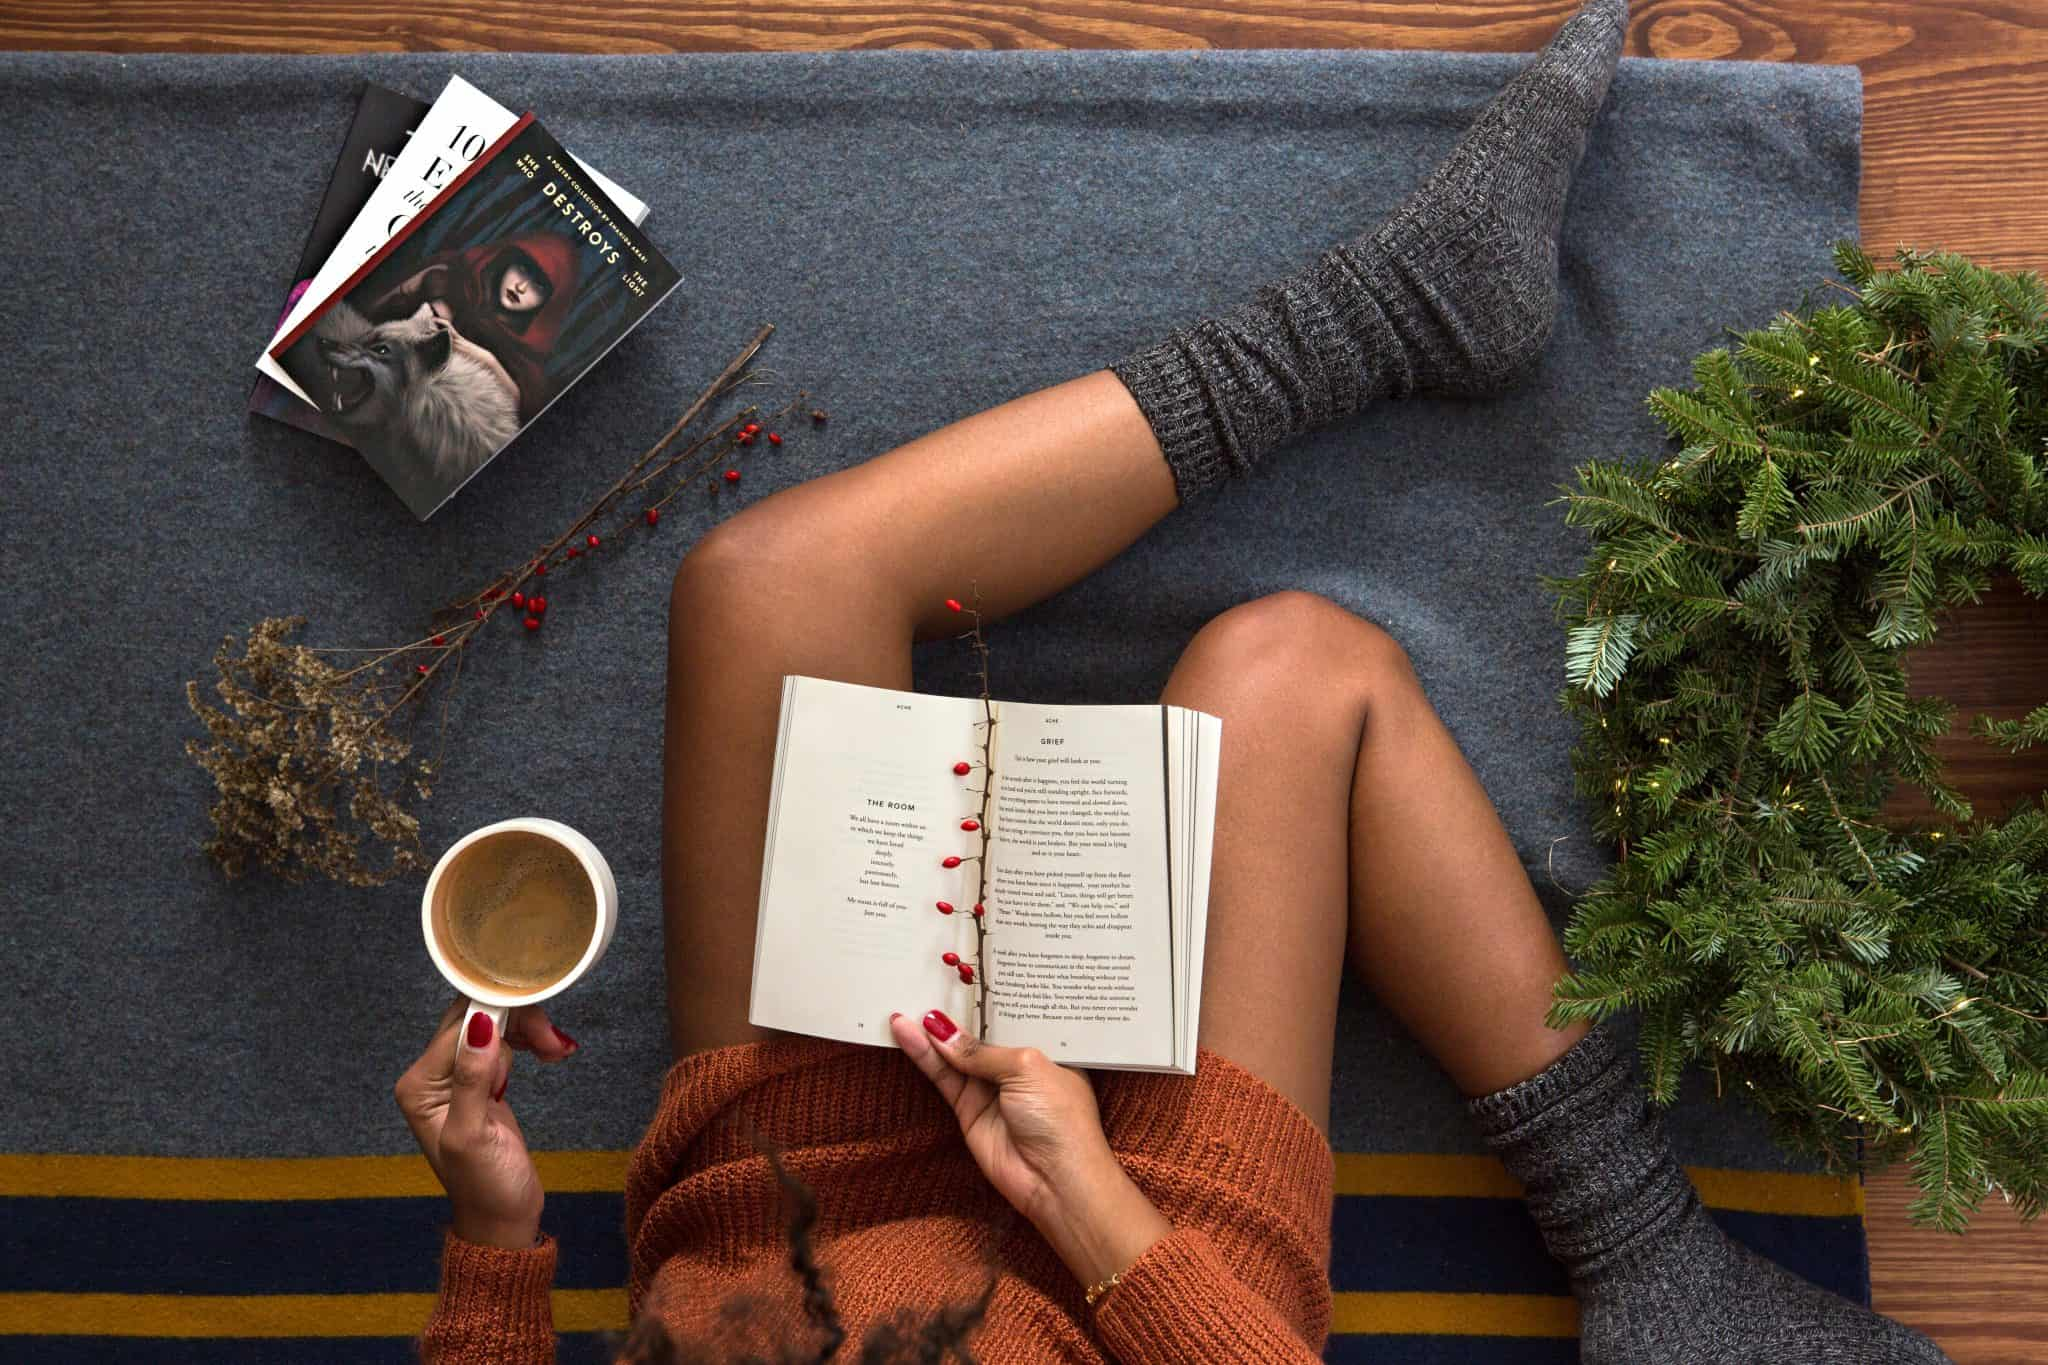 Female sitting on blanket with cup of coffee and book